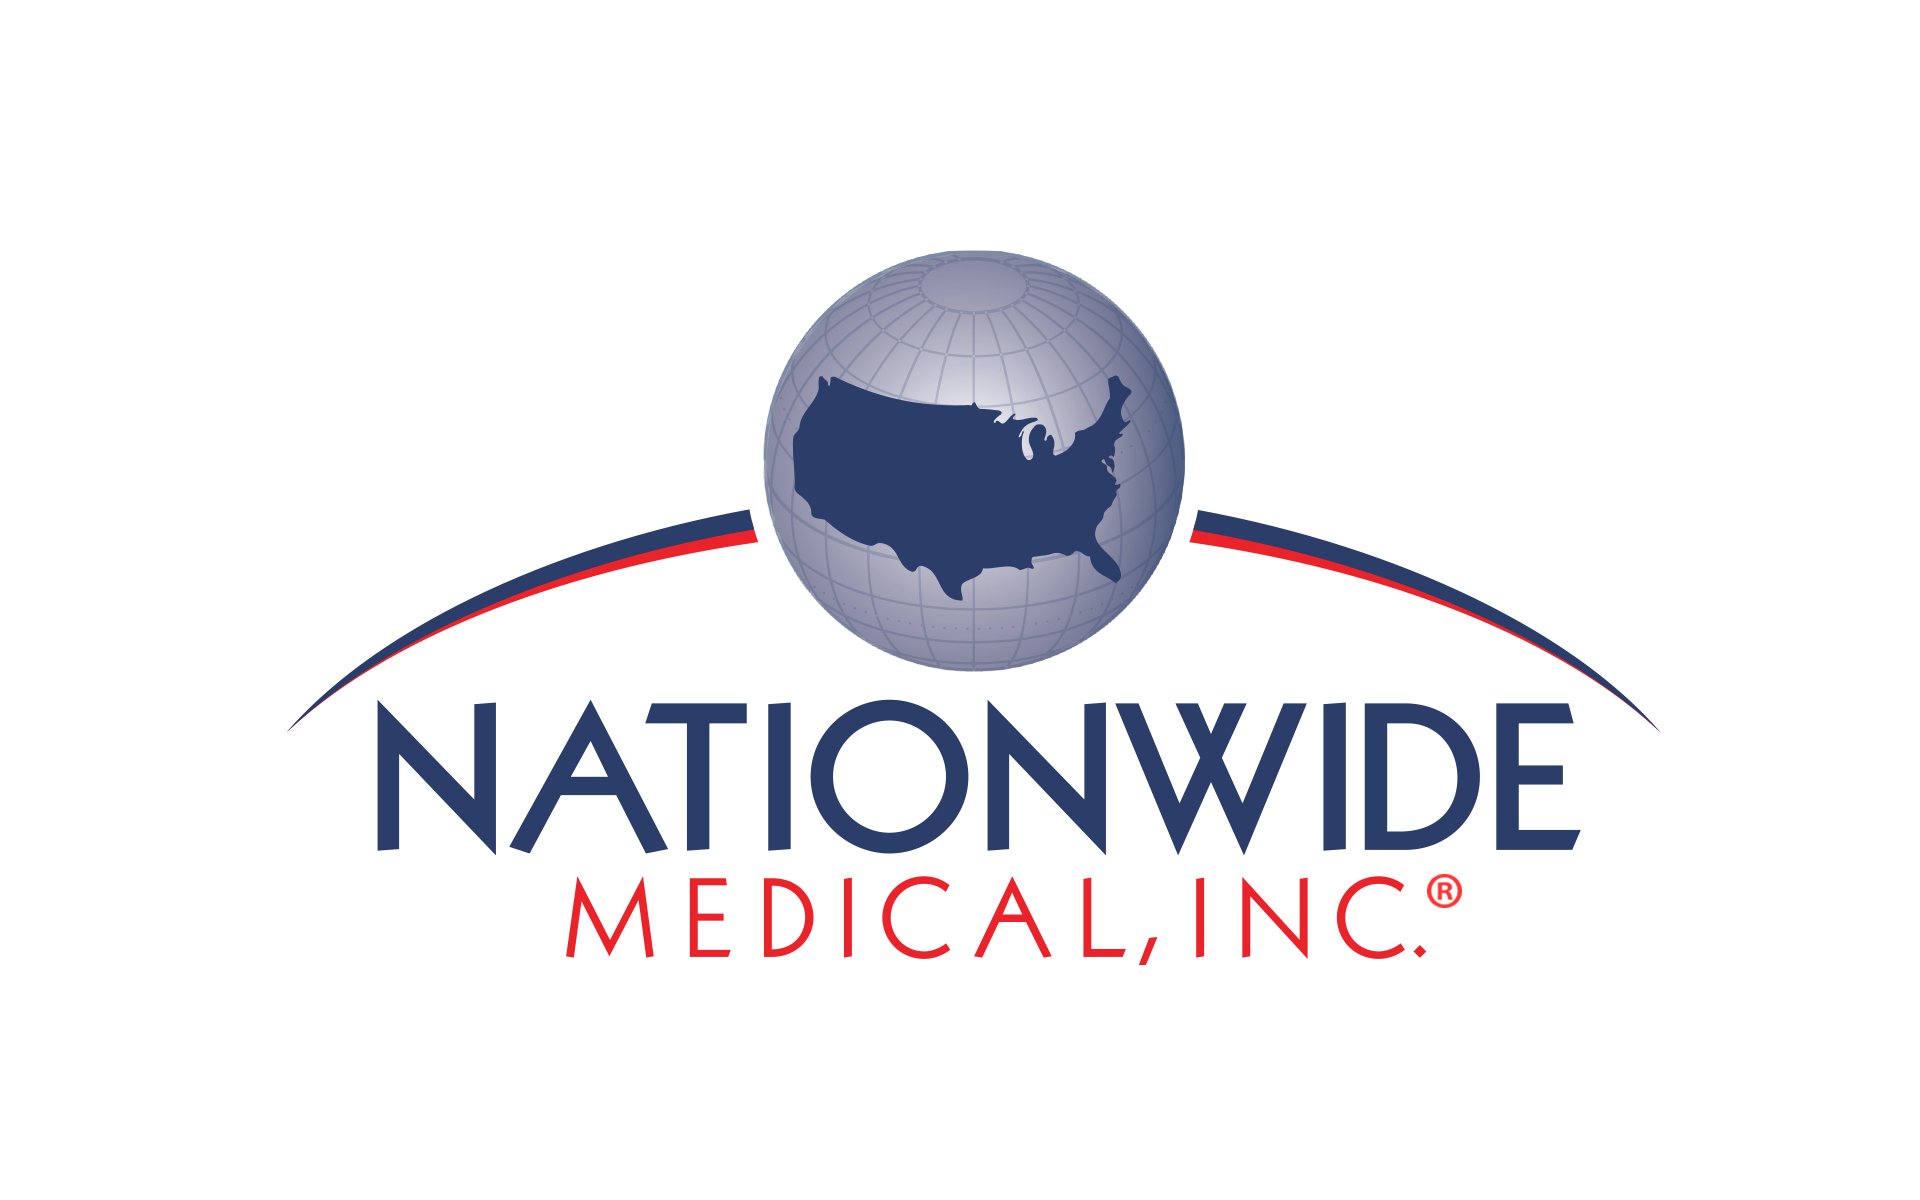 new concept 8963b 0f483 Nationwide Medical, Inc.   CPAP Supplies, Therapy   More